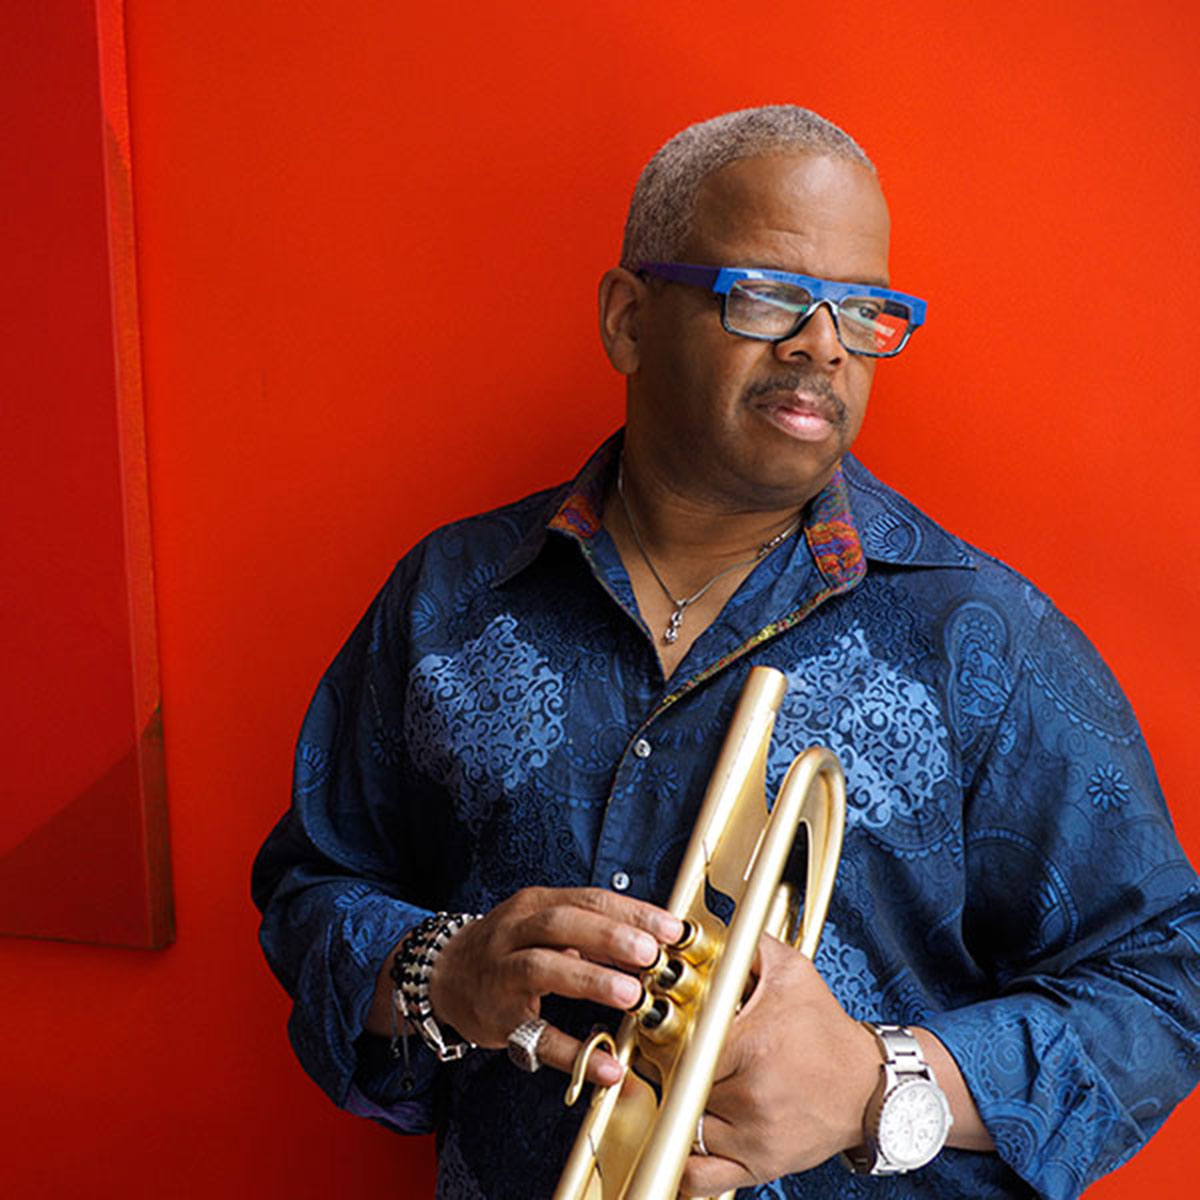 Terence Blanchard holding trumpet in front of orange wall.